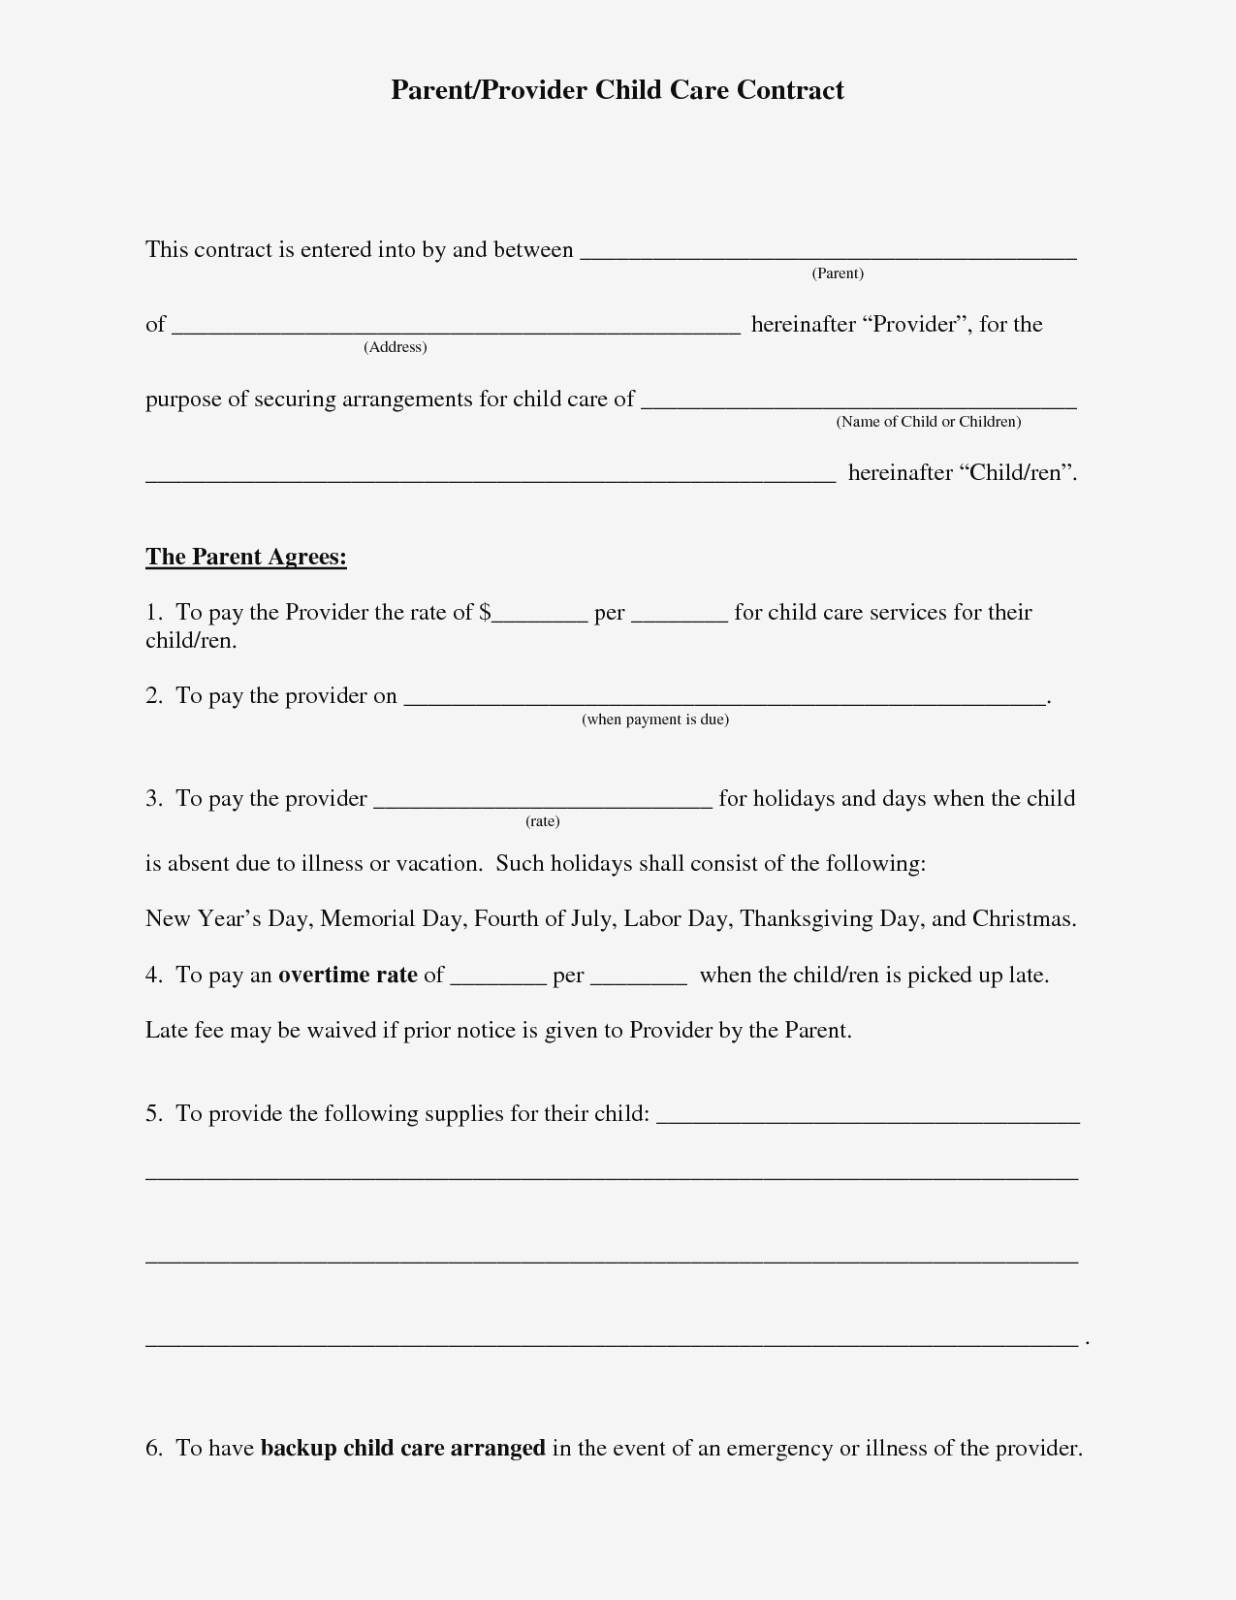 Free Daycare Contract Forms | Daycare Forms | Pinterest | Daycare - Free Printable Daycare Forms For Parents